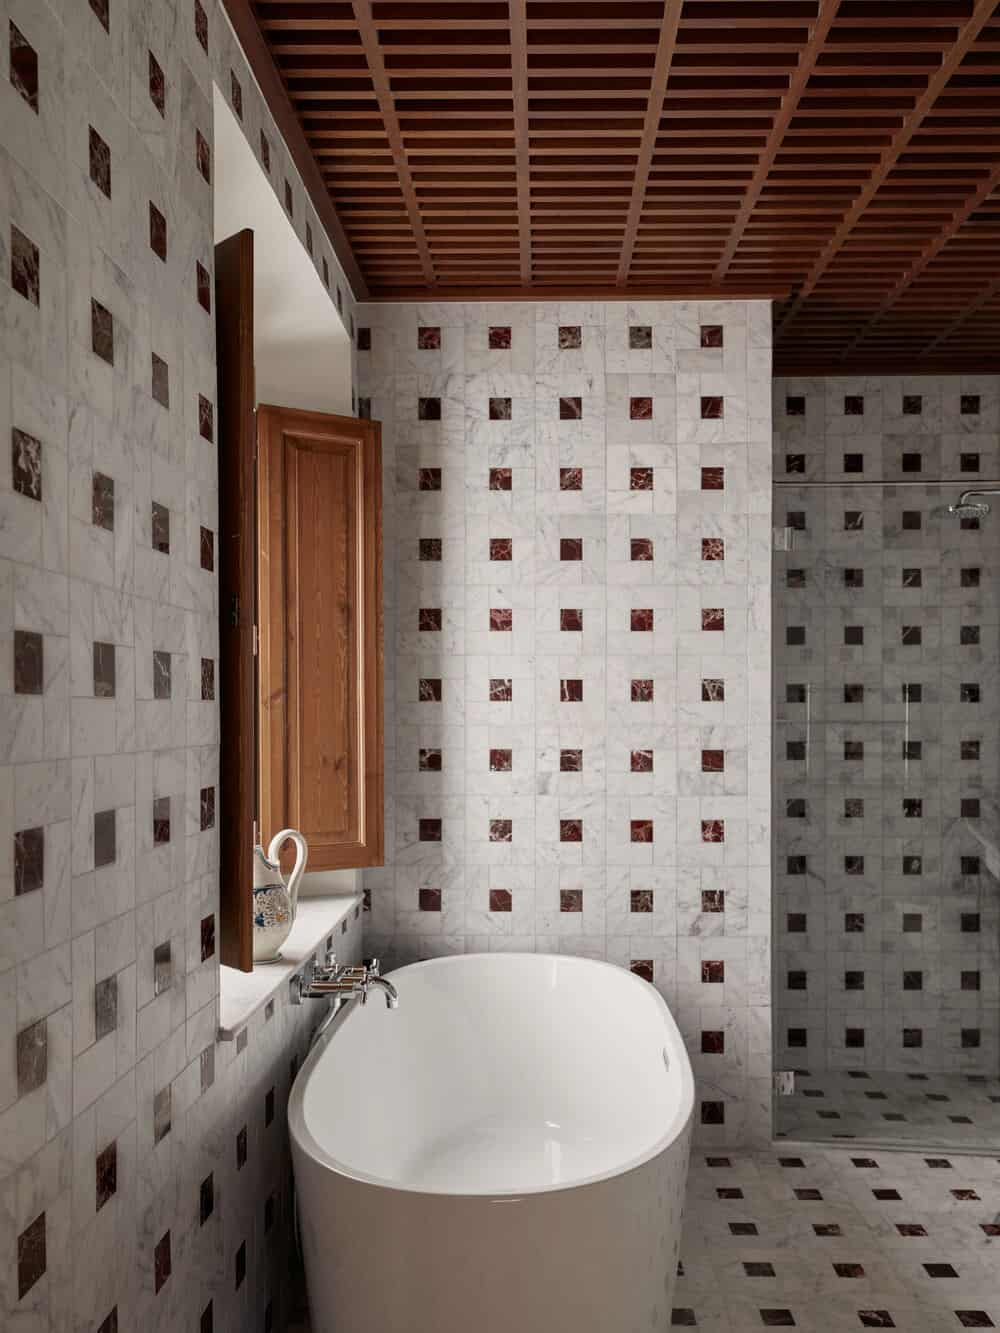 This is a closer look at the bathroom that has a freestanding bathtub that stands out against the patterned walls by the window.